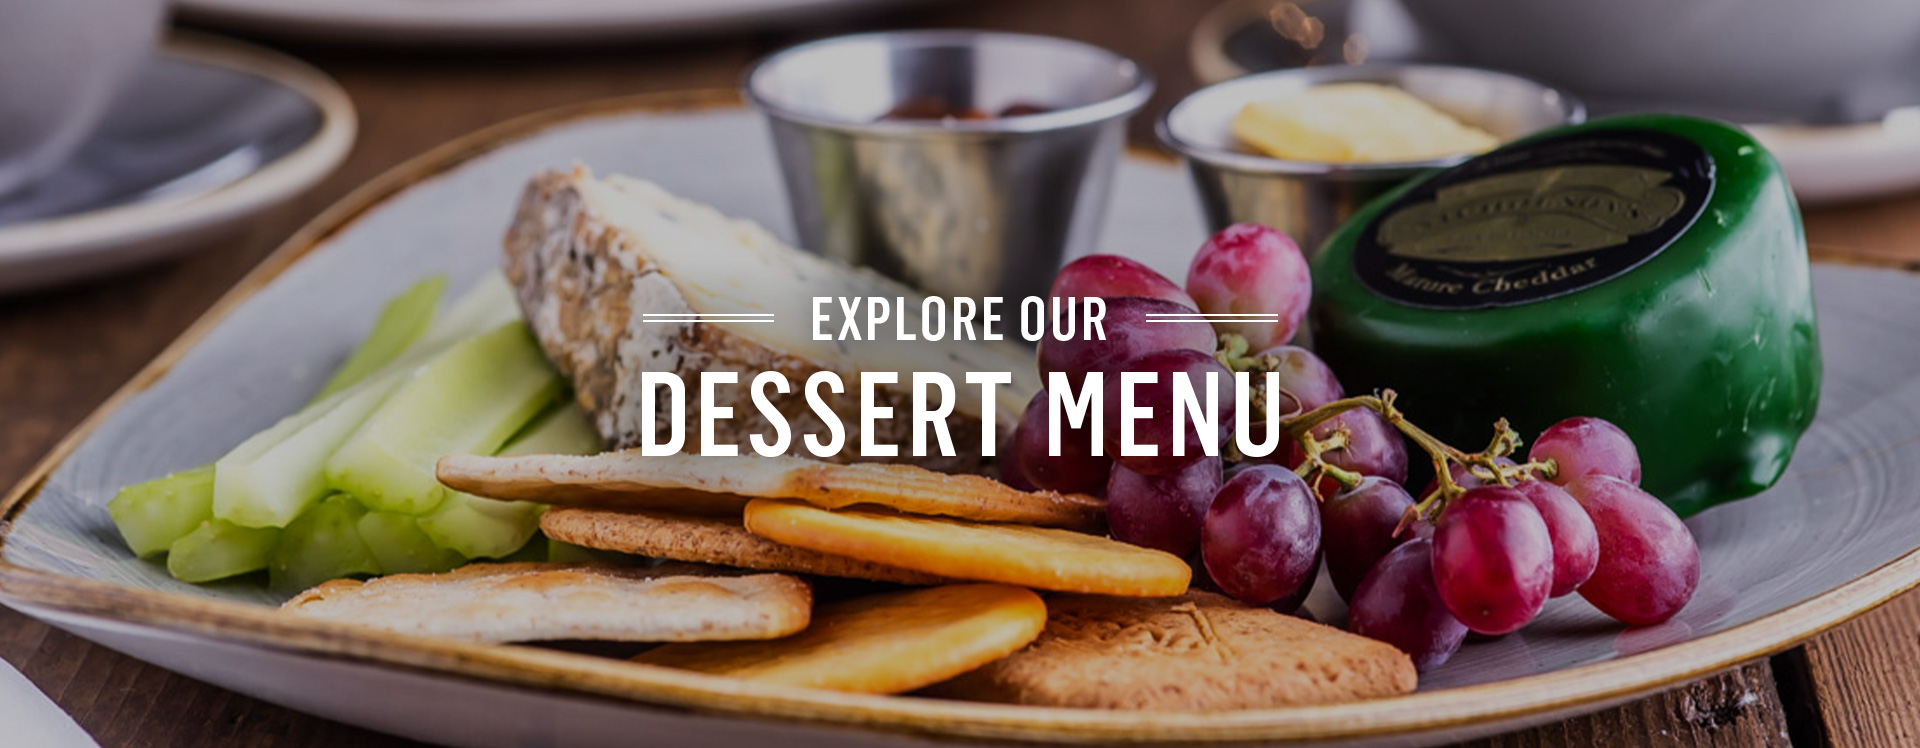 Dessert menu at The Blackfriar - Book a table